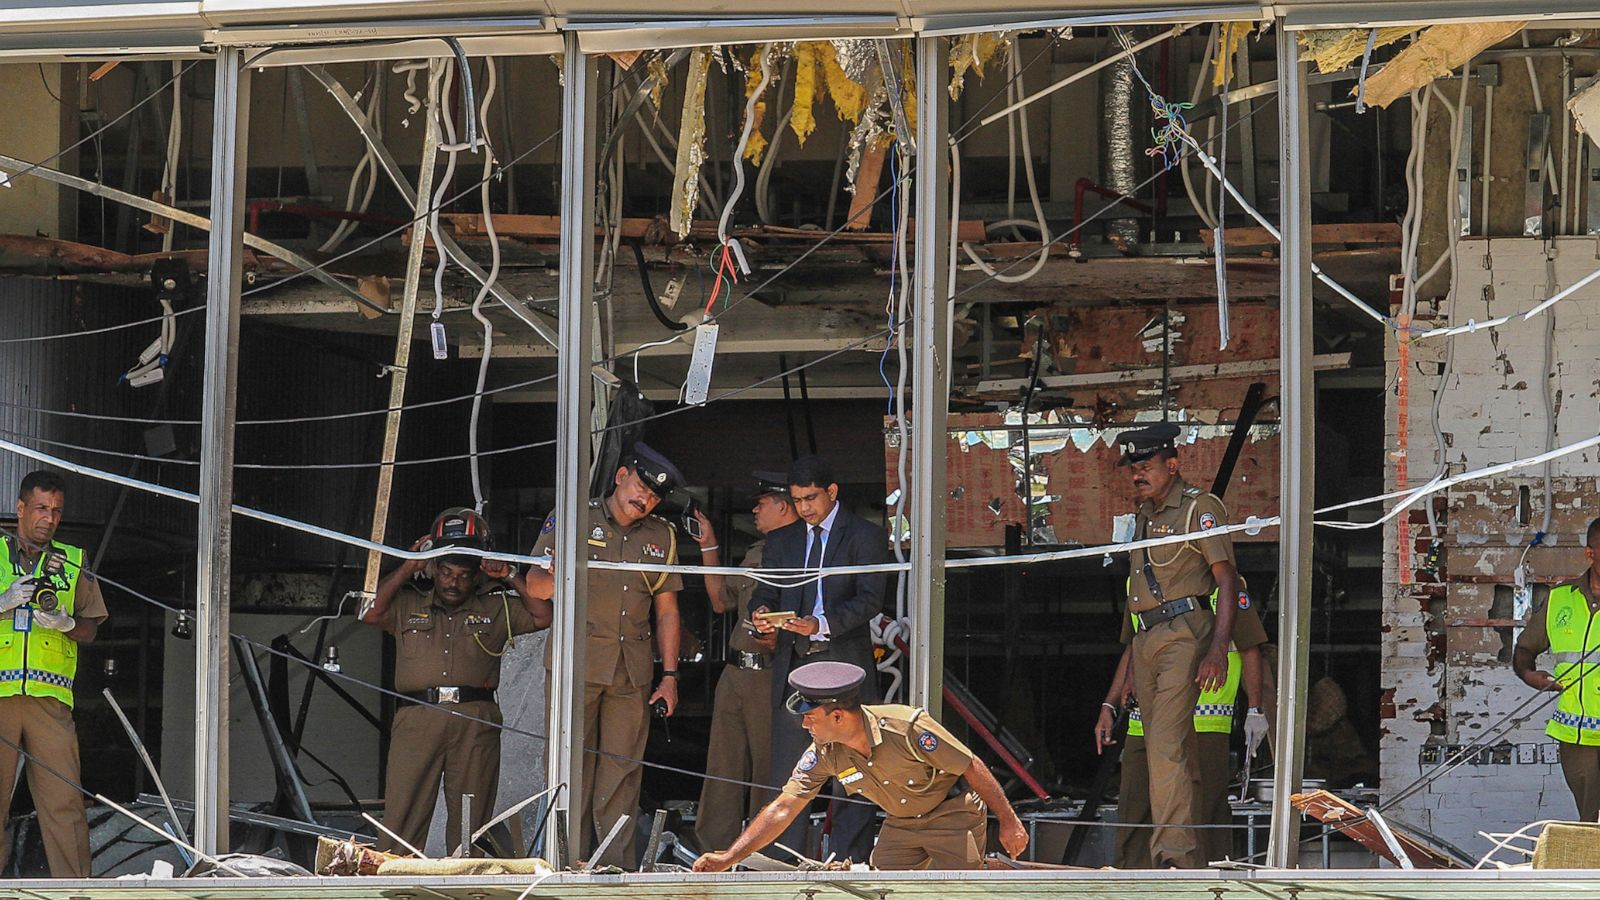 Sri Lanka Files Charges Against 25 People in Connection With 2019 Easter Suicide Bombings